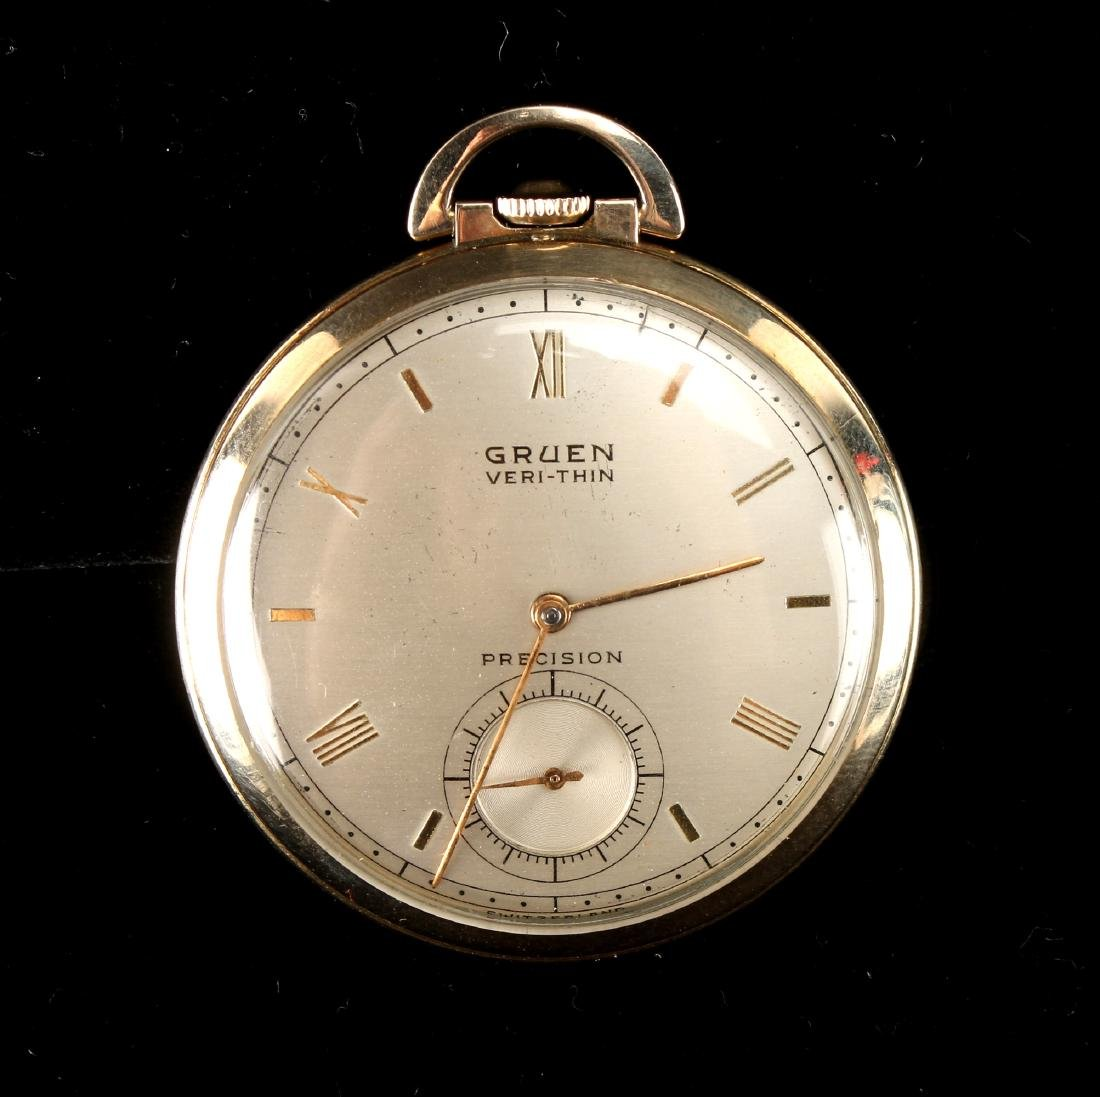 GRUEN VERI-THIN PRECISION POCKET WATCH